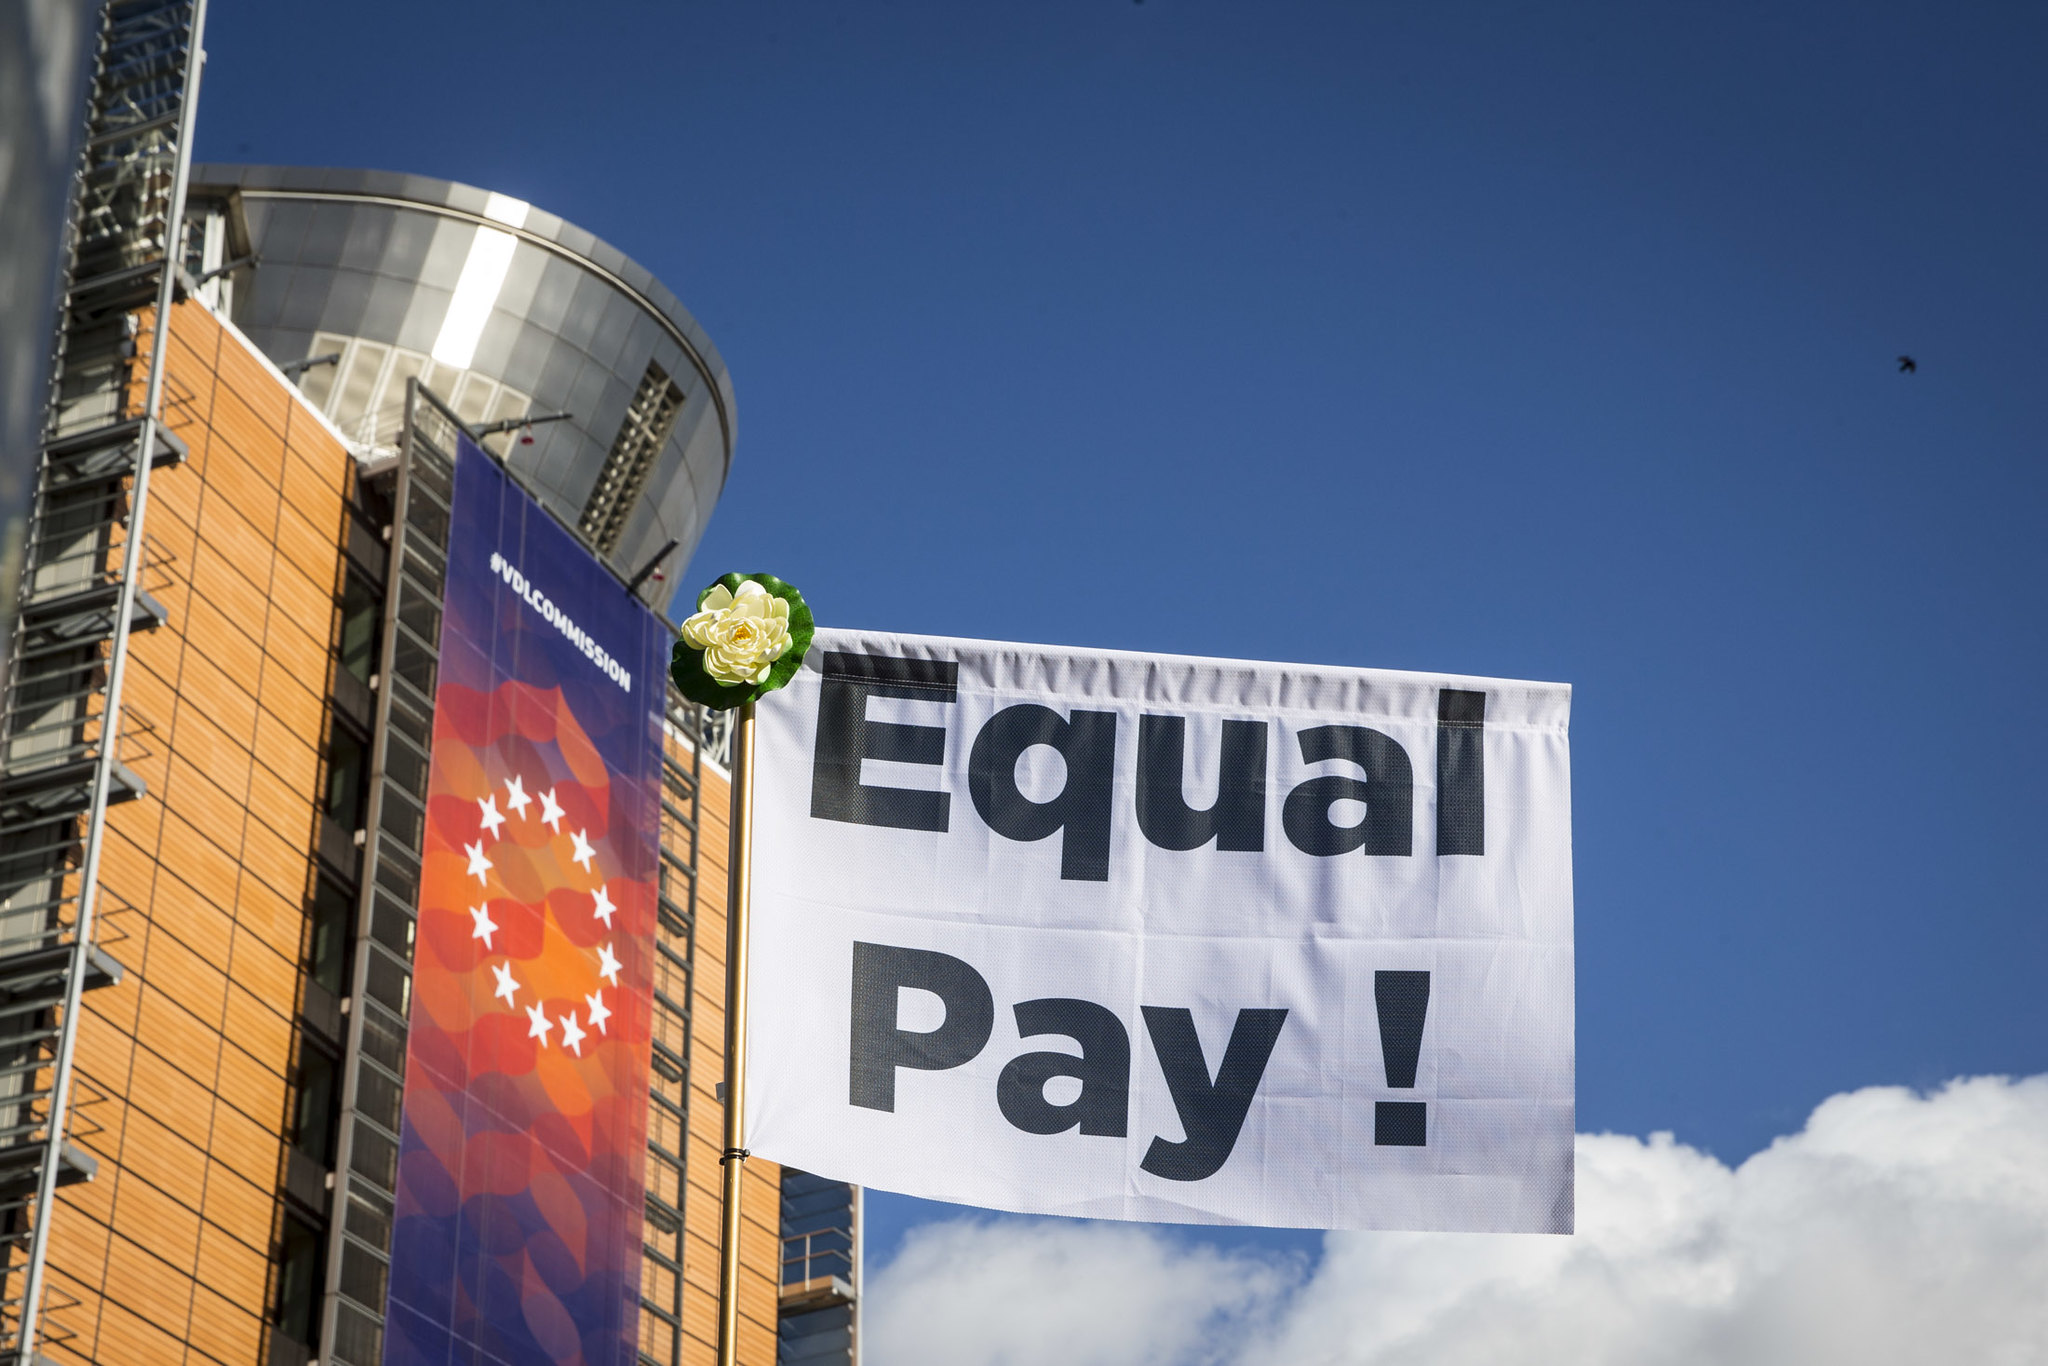 Gender Pay Transparency protest outside the European Commission